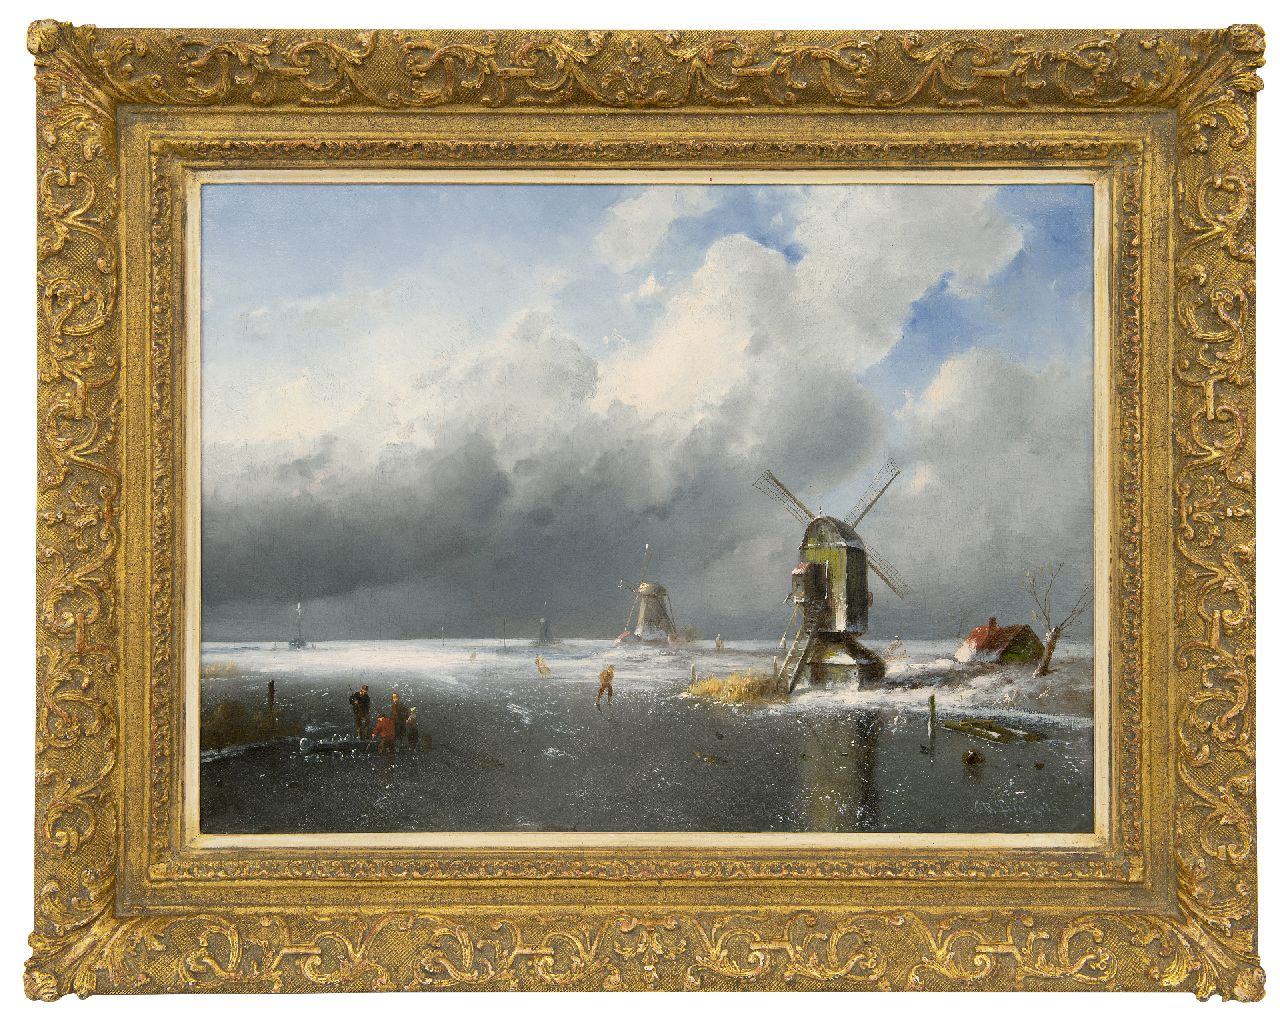 Leickert C.H.J.  | 'Charles' Henri Joseph Leickert | Paintings offered for sale | Figures on the ice at anapproaching snowstorm, oil on canvas 42.2 x 58.2 cm, signed l.r.